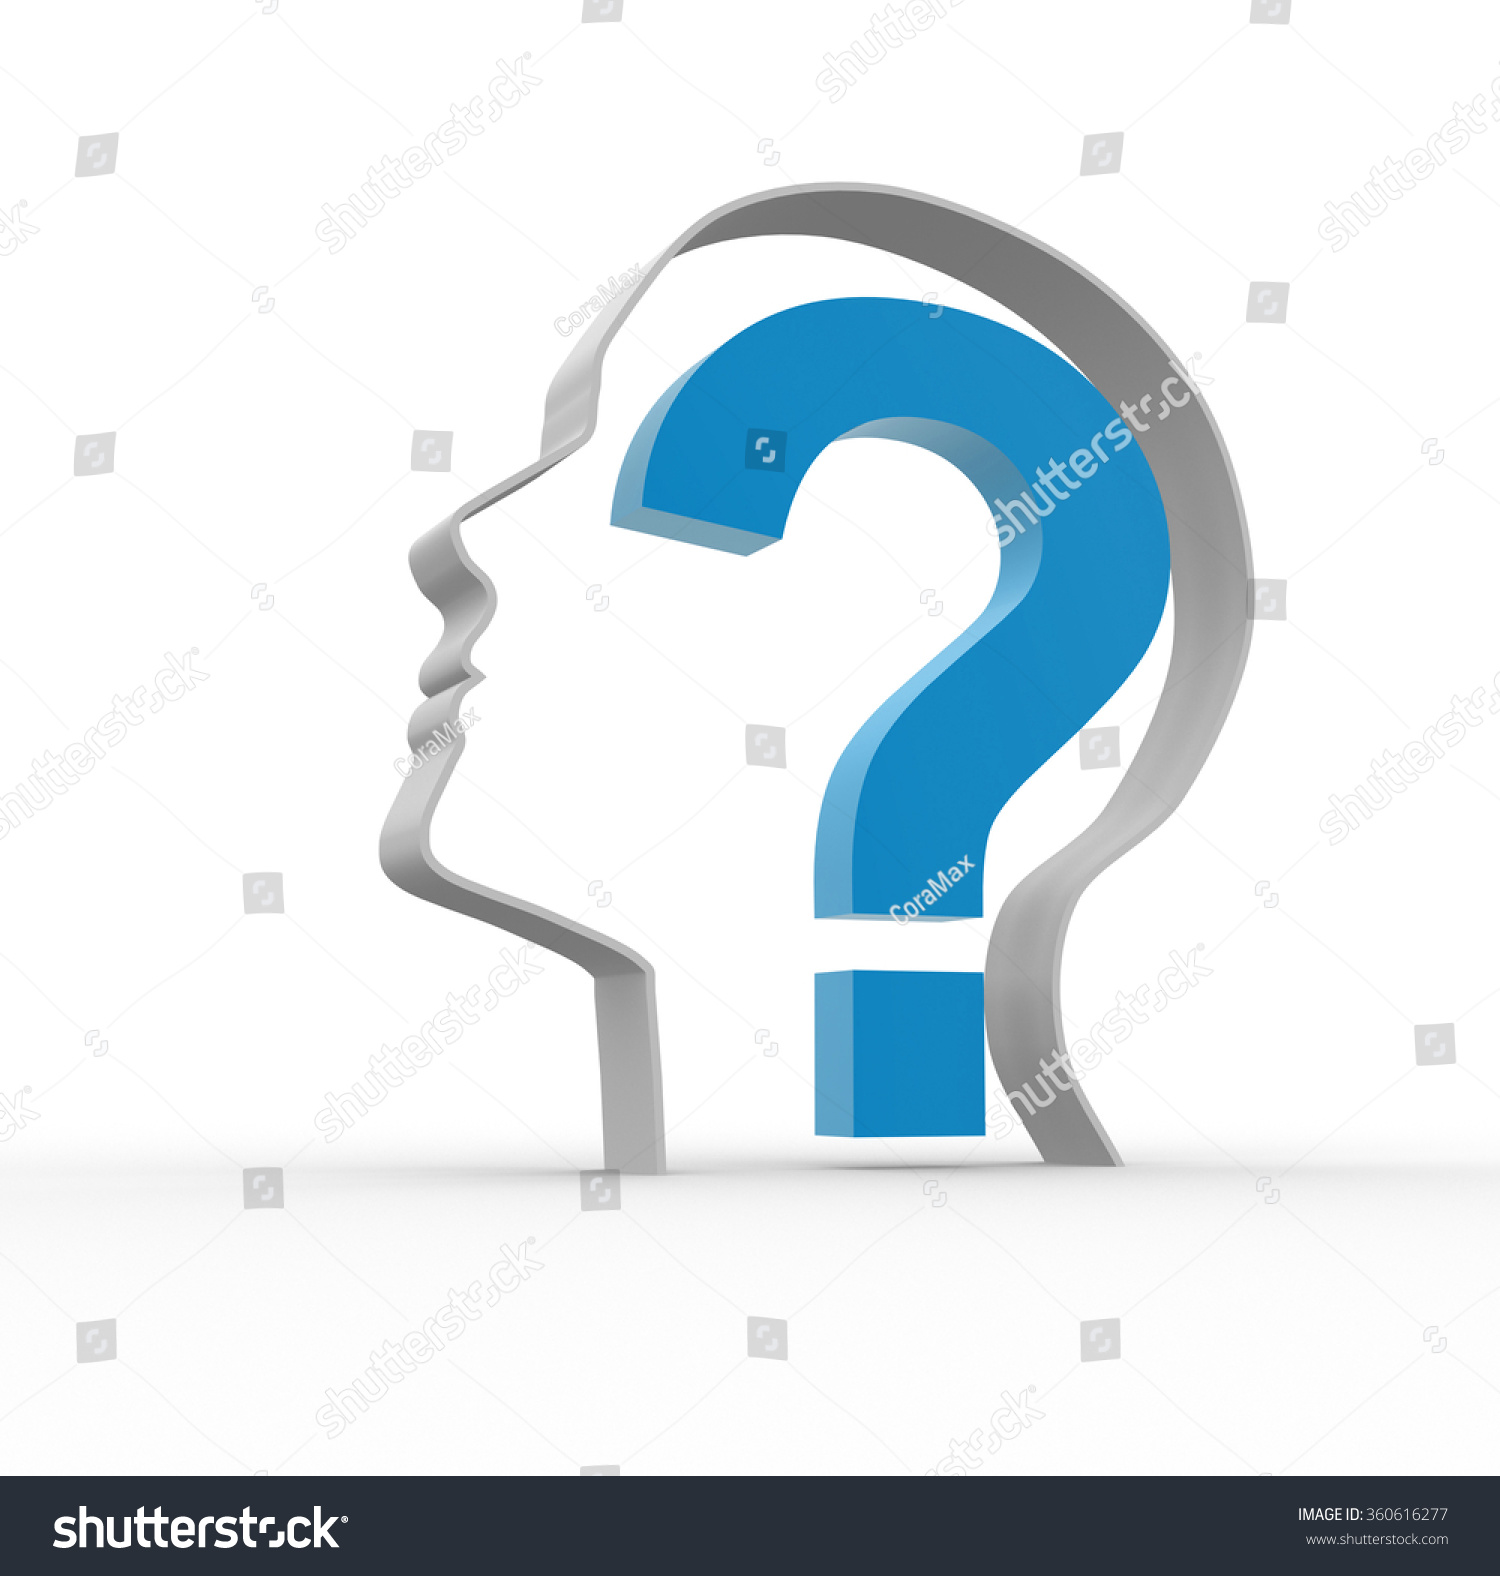 3d person with magnifying glass and question mark stock images image - Human Head With A Question Mark 3d Render Illustration